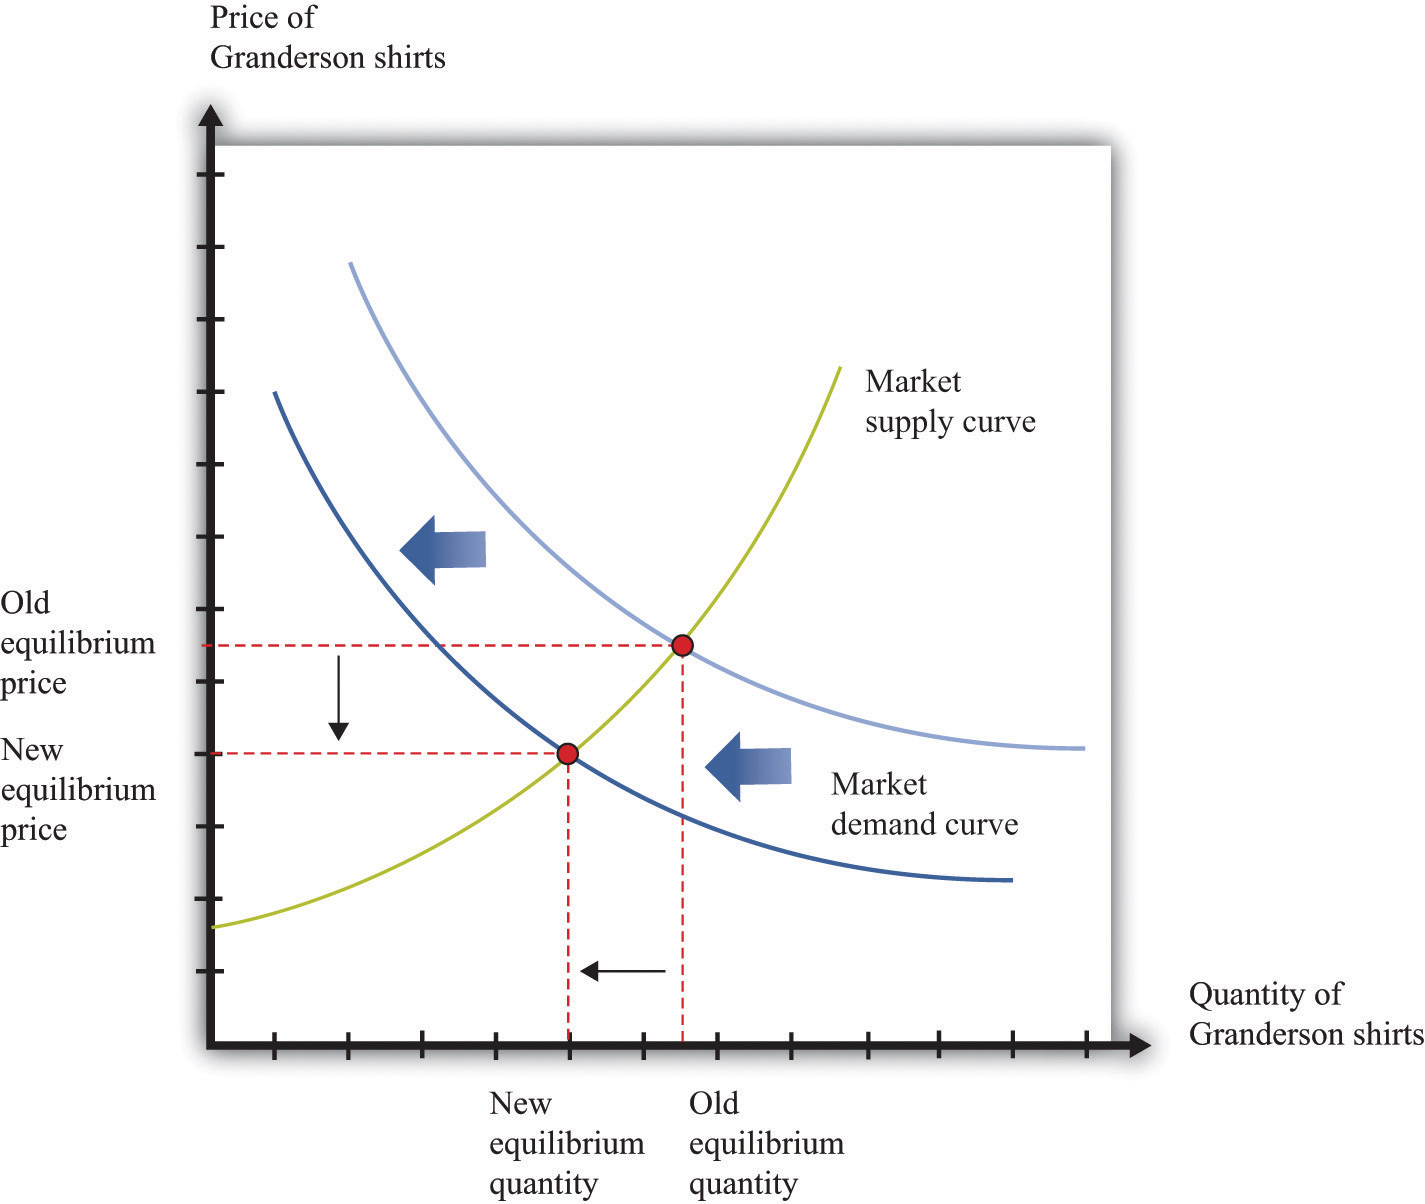 what is the effect on the equilibrium price and quantity